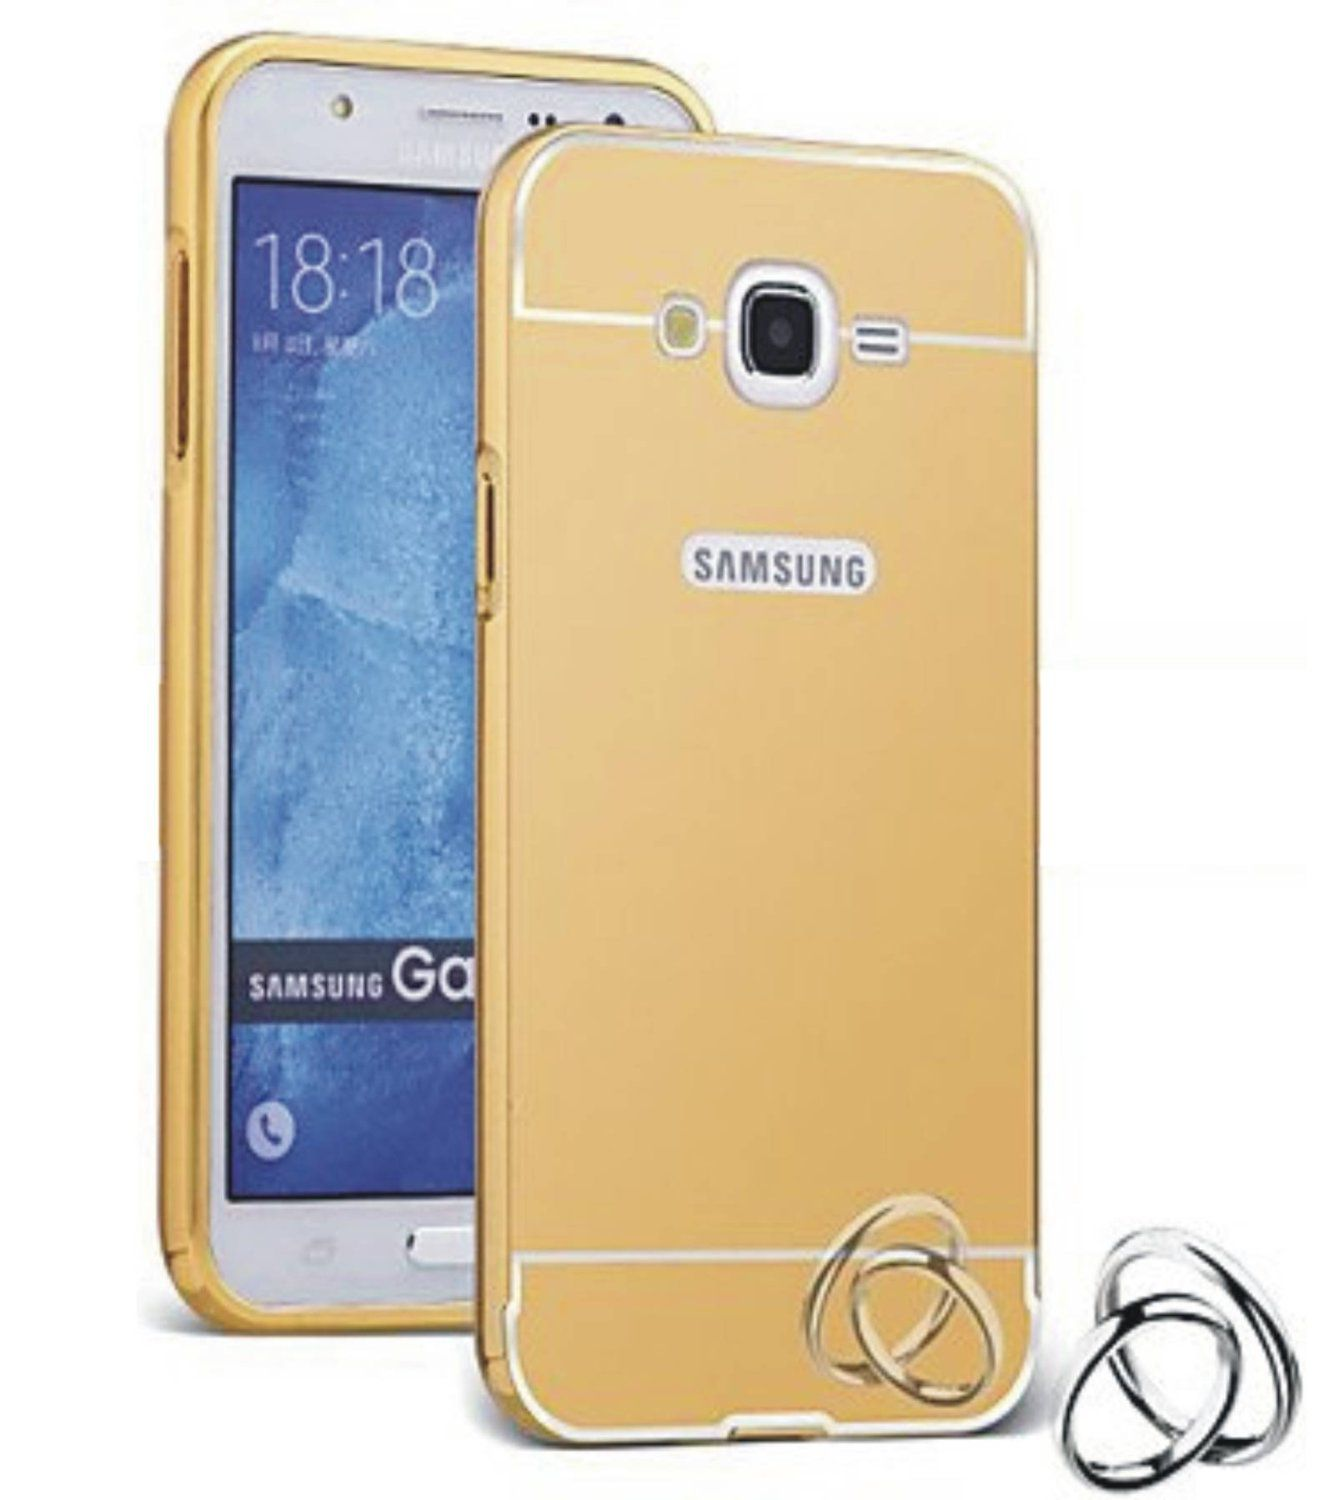 Style Crome Metal Bumper + Acrylic Mirror Back Cover Case For RedMiMi2S Gold + Flexible Portable Thumb OK Stand